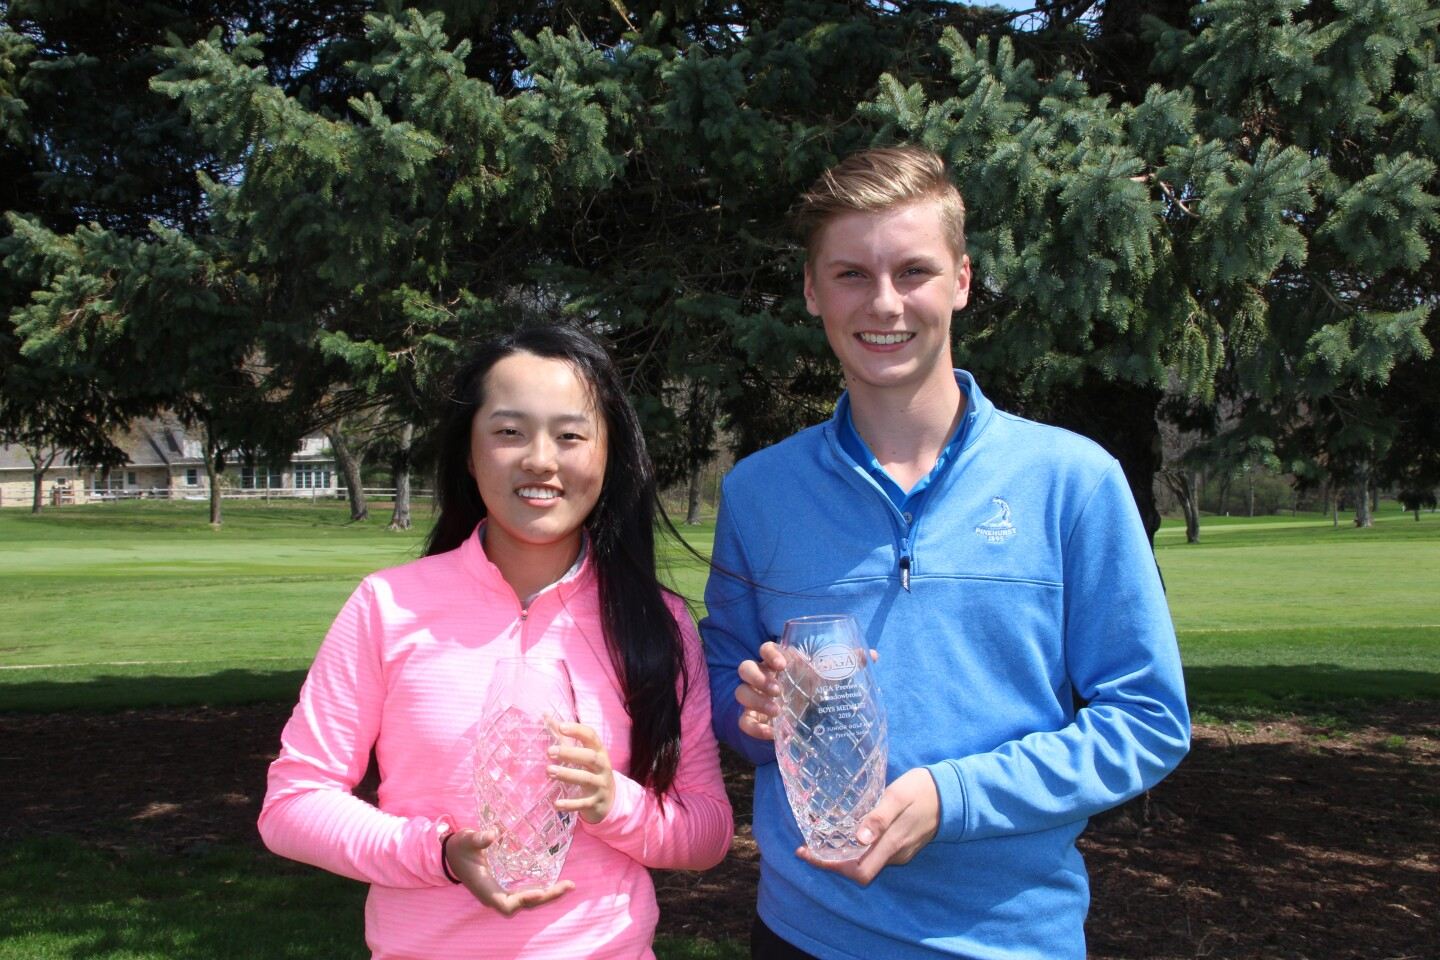 Kiki Bruner and Grant Norman Trophy Photo  - 2019 - AJGA Preview at Meadowbrook